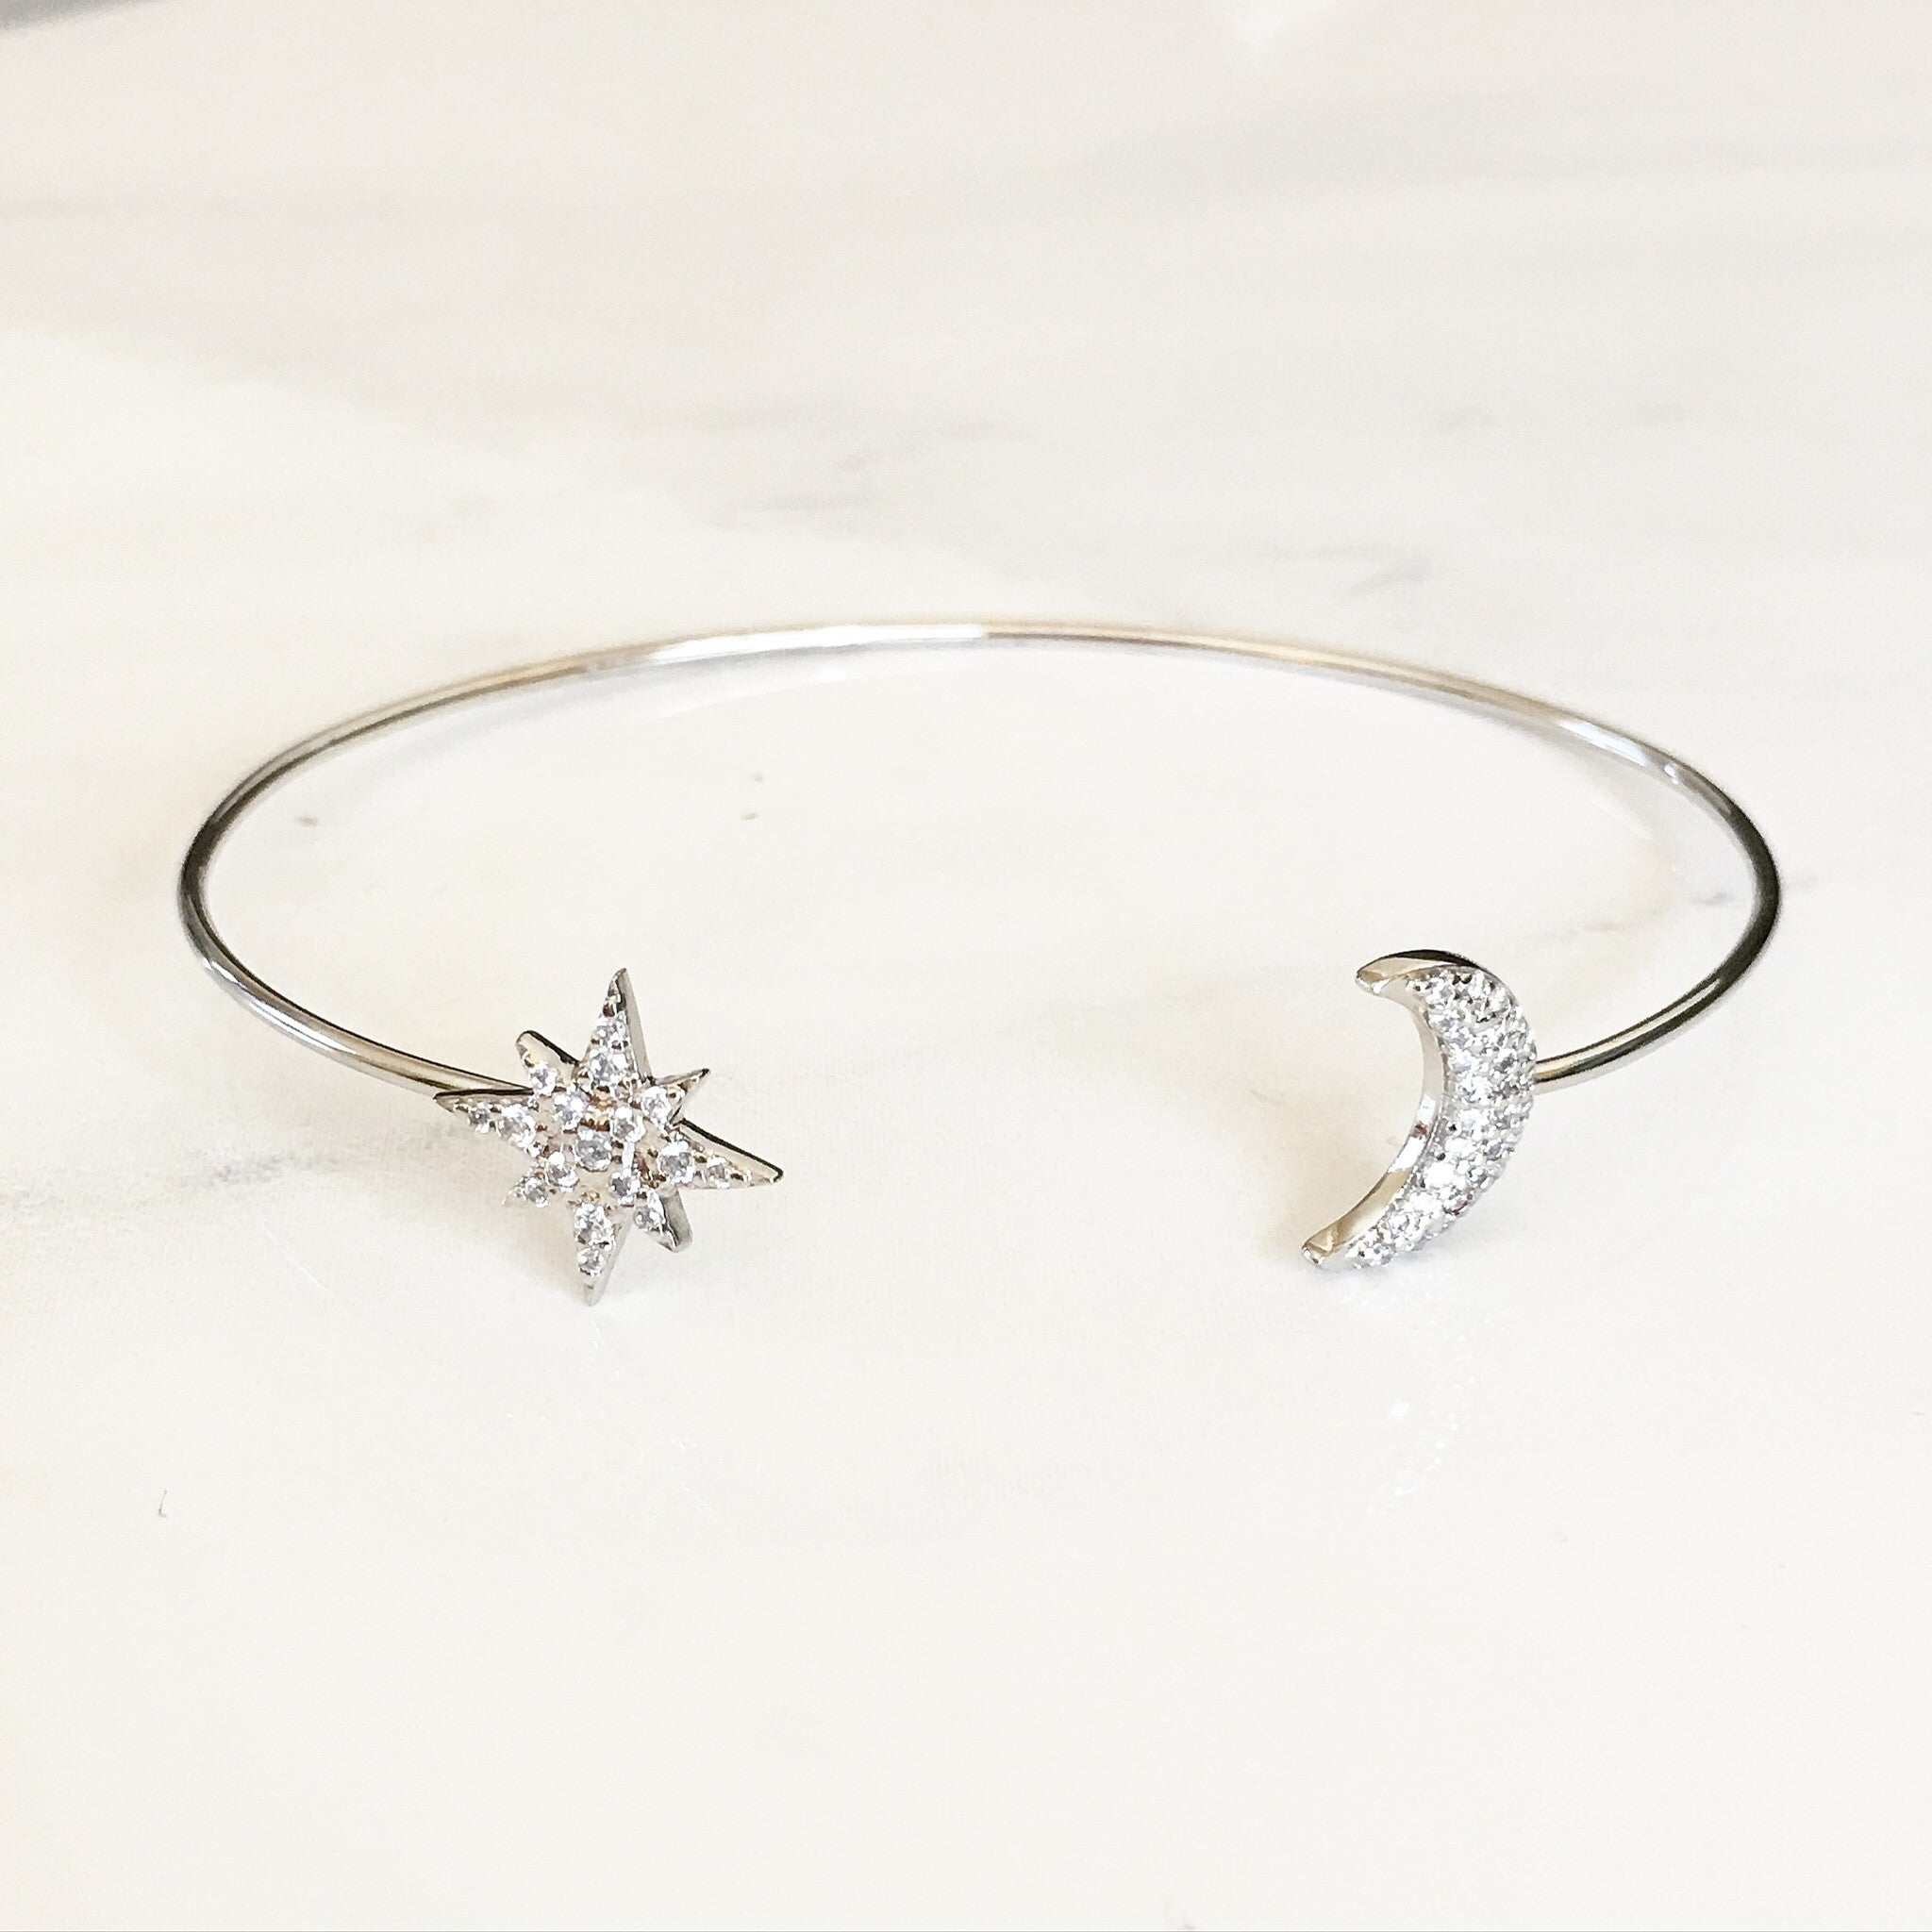 MOON / STARBURST -Bangle